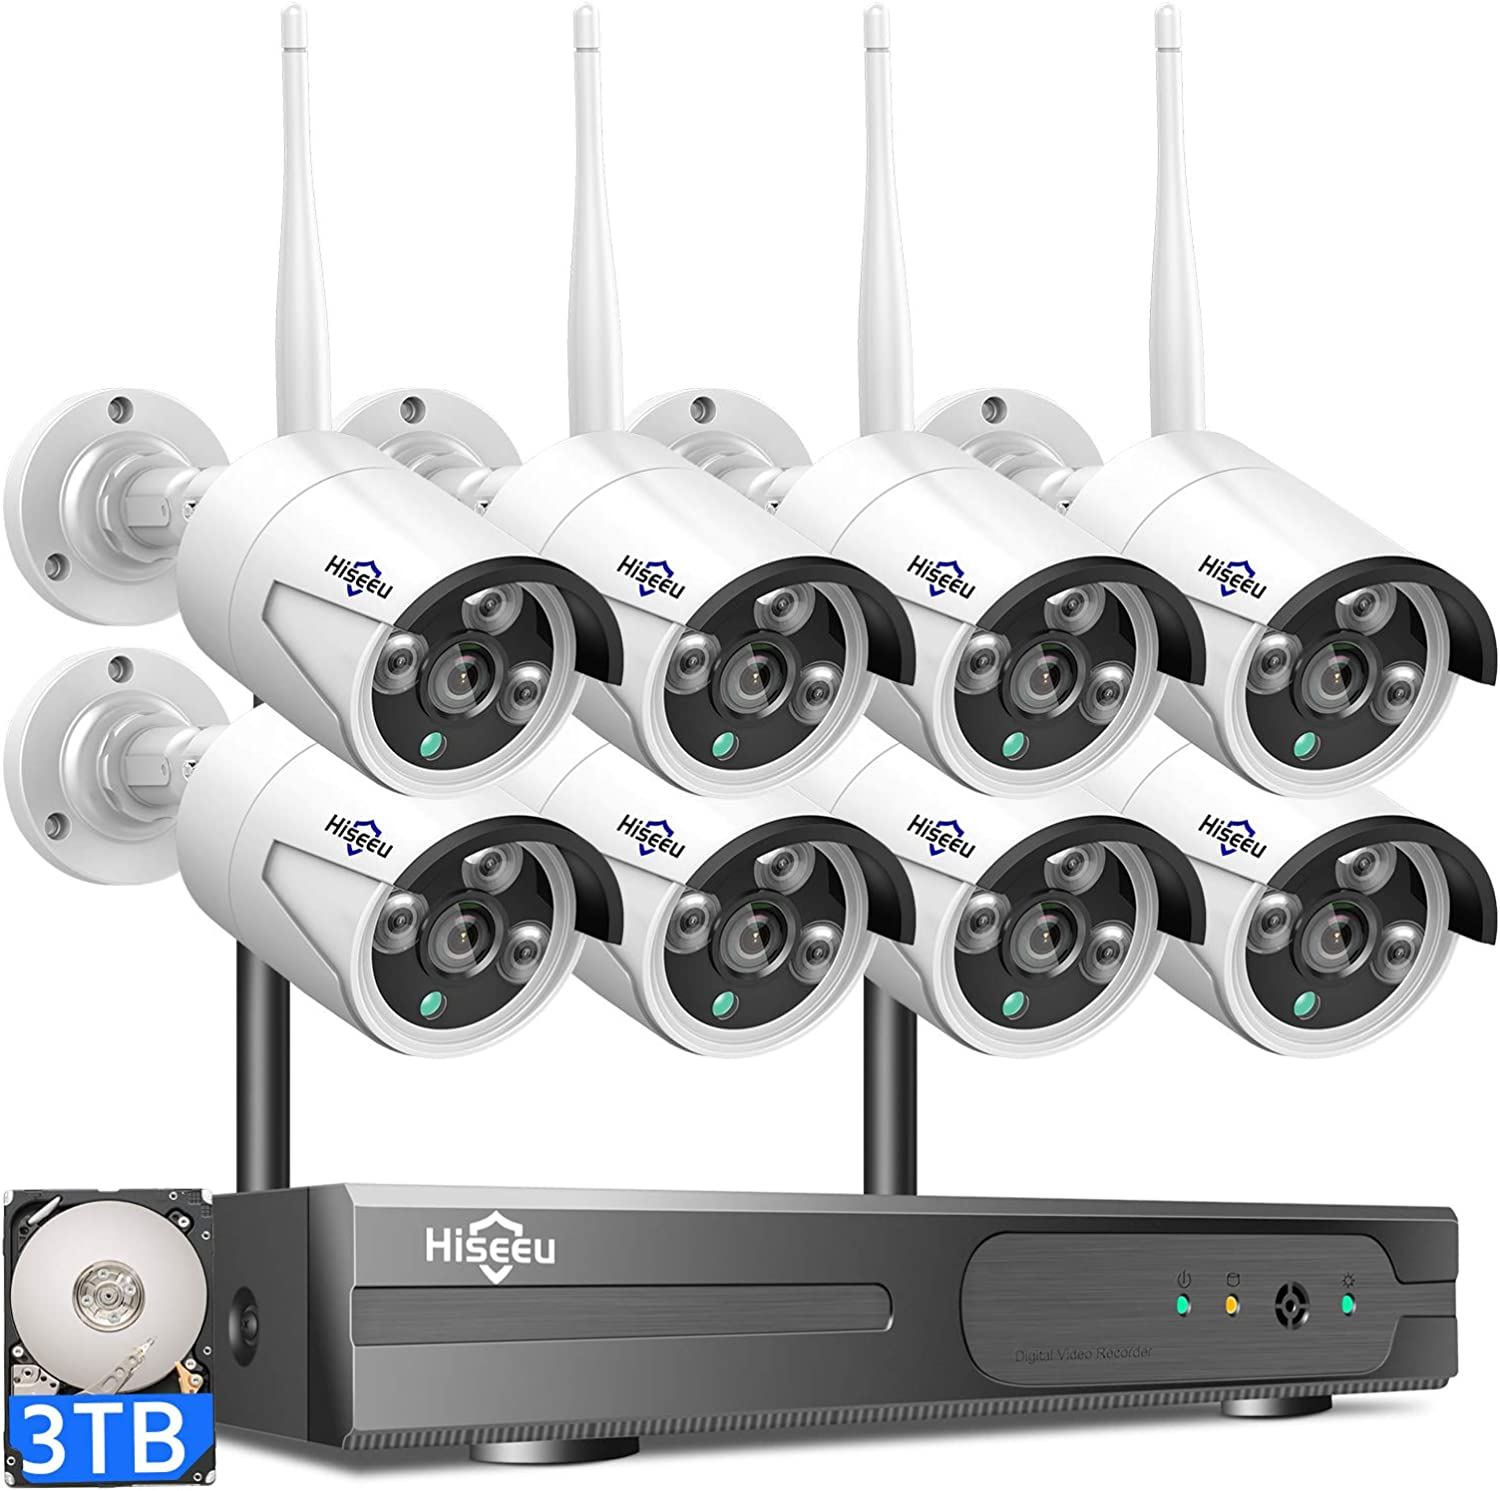 4g wireless security camera systems